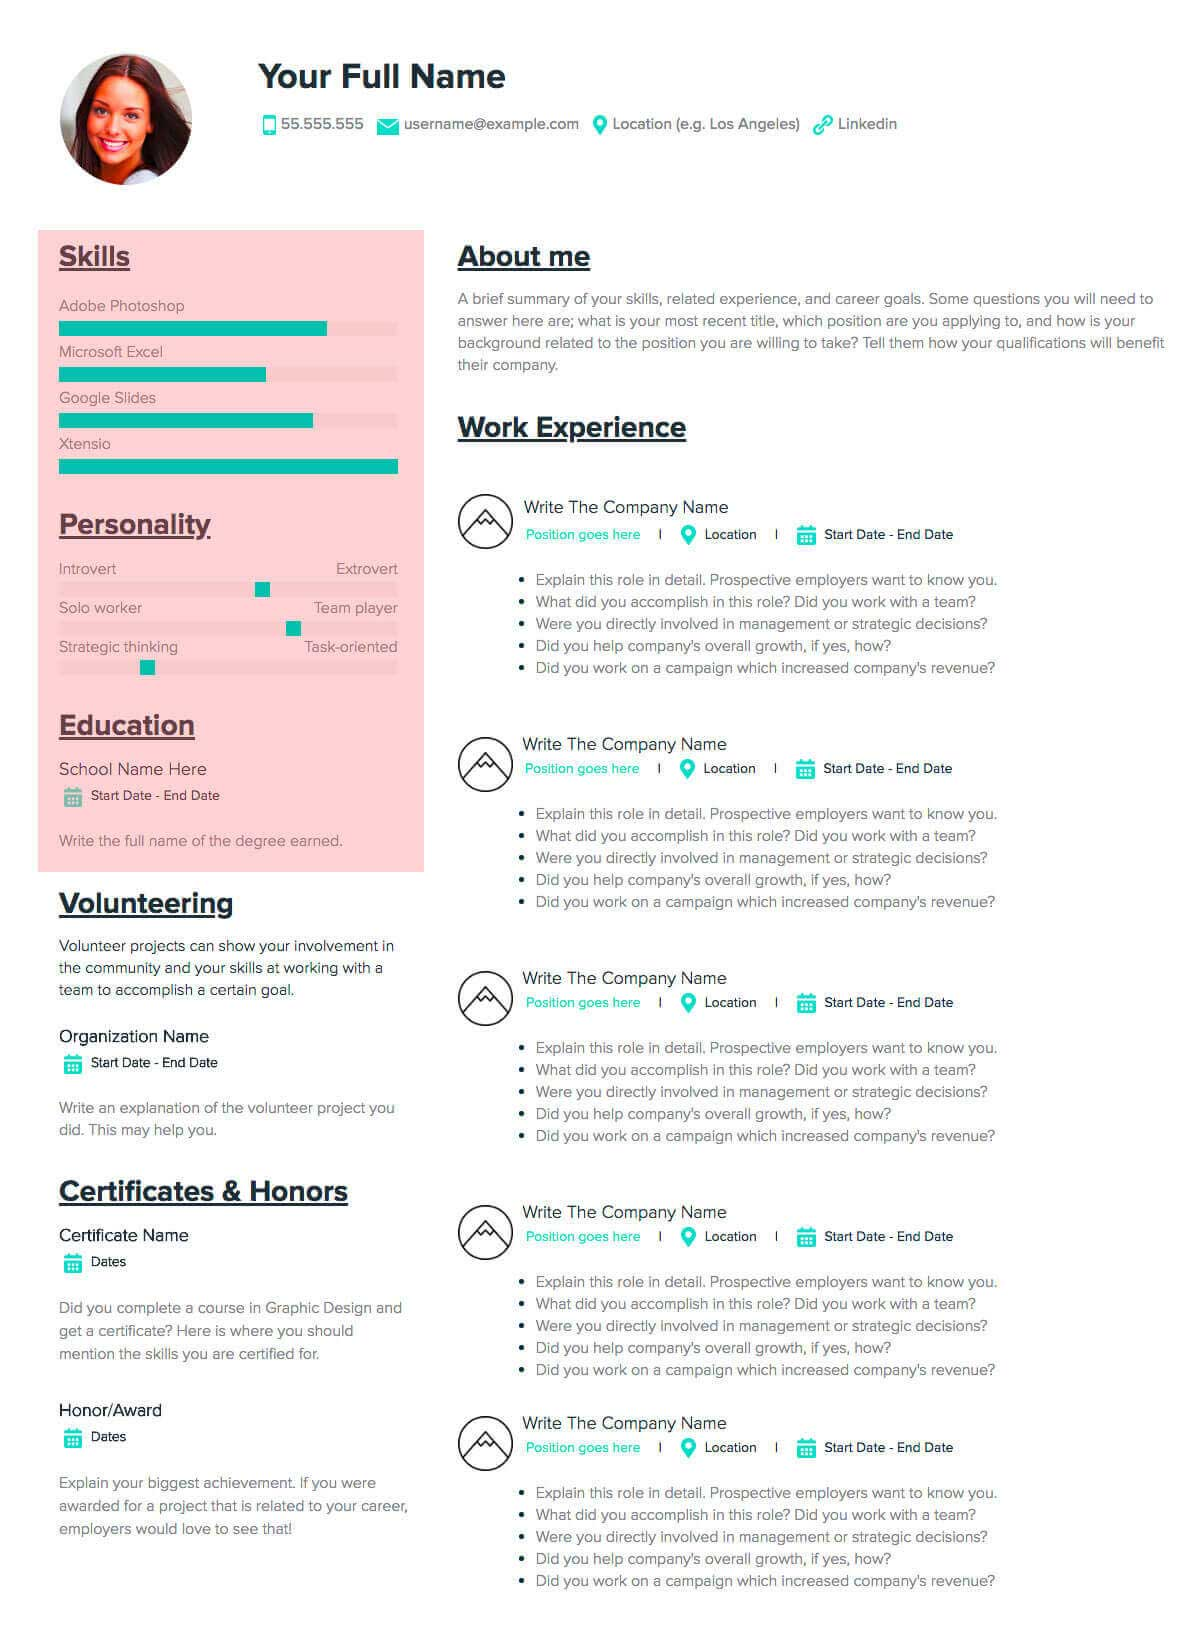 How To Make a Resume: A step-by-step guide & sample